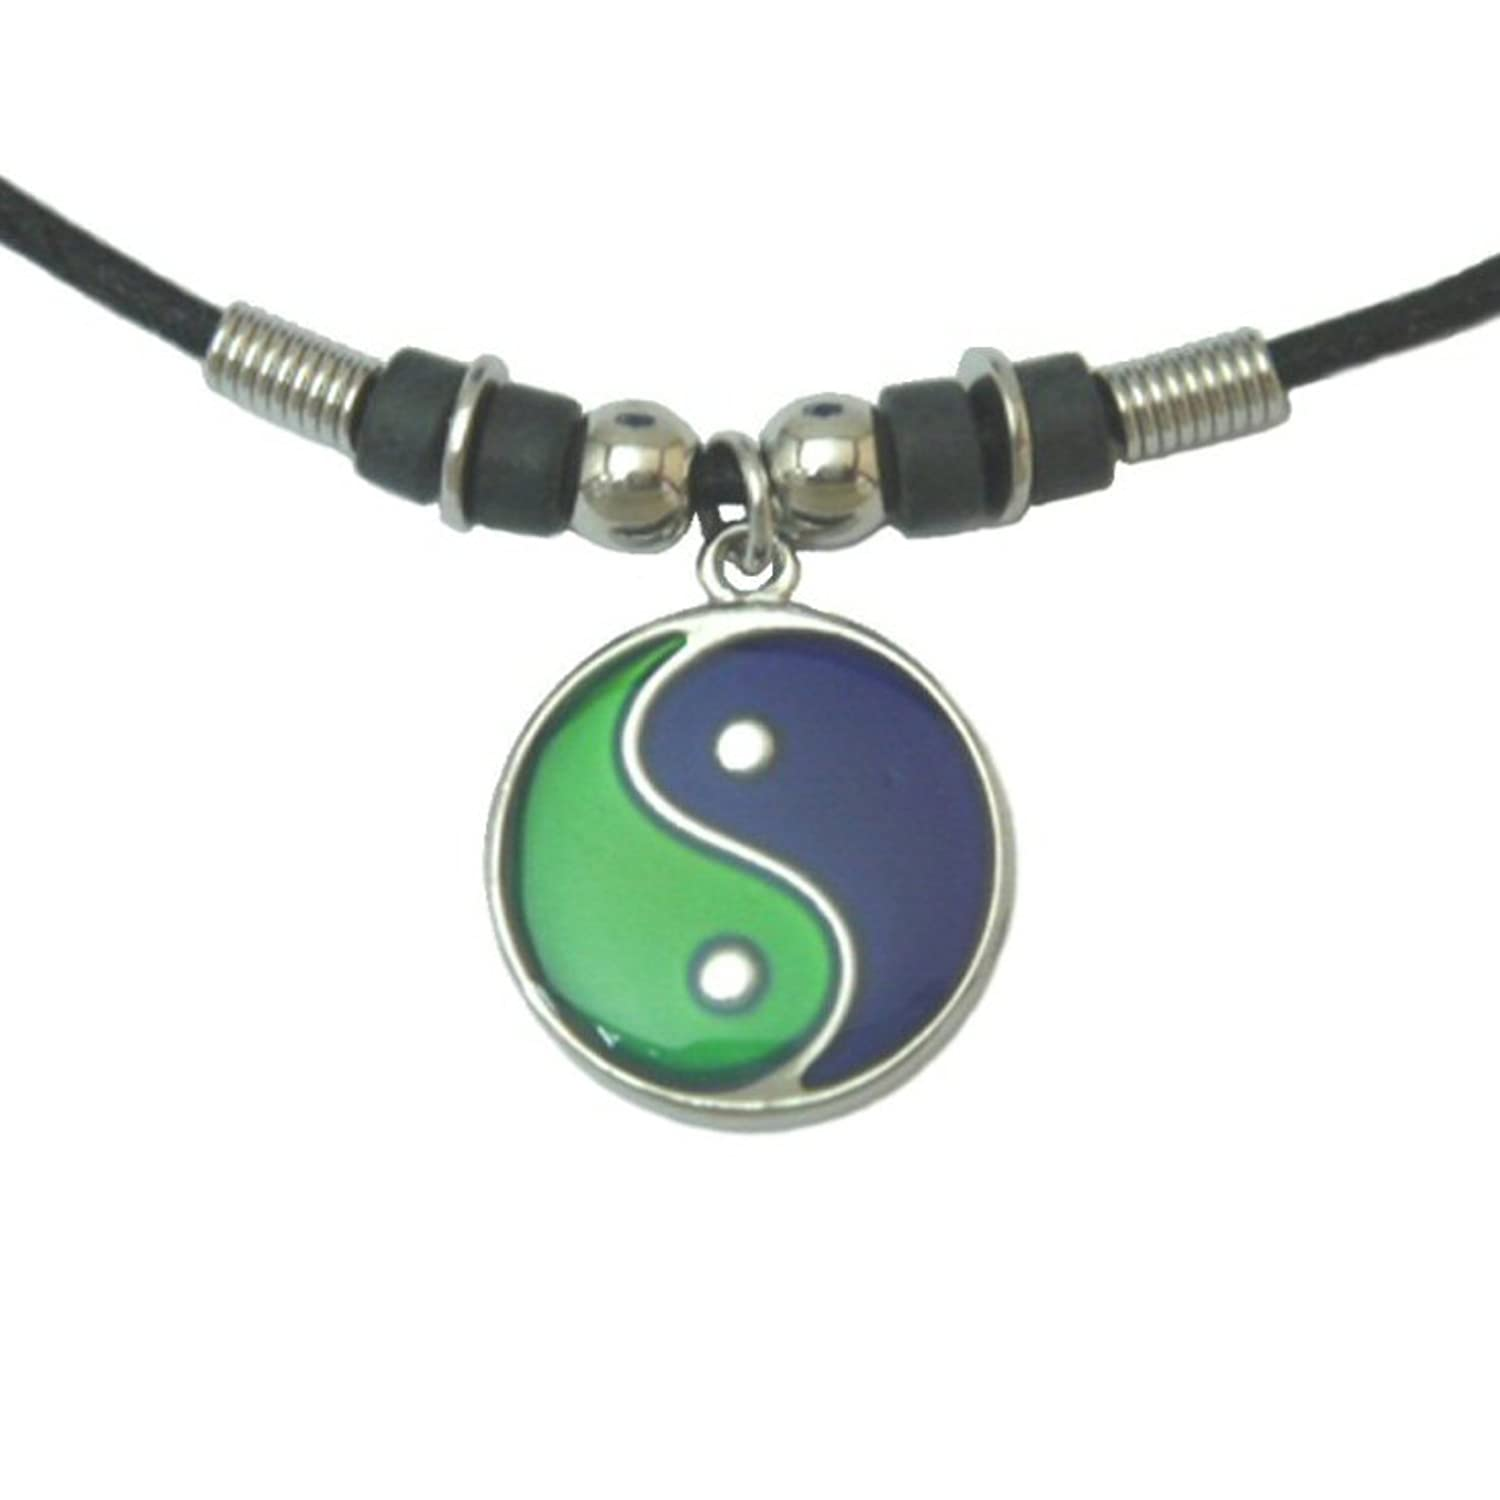 Amazon tapp collections mood pendant necklace yinyang amazon tapp collections mood pendant necklace yinyang taiji ying yang mood necklace jewelry aloadofball Gallery